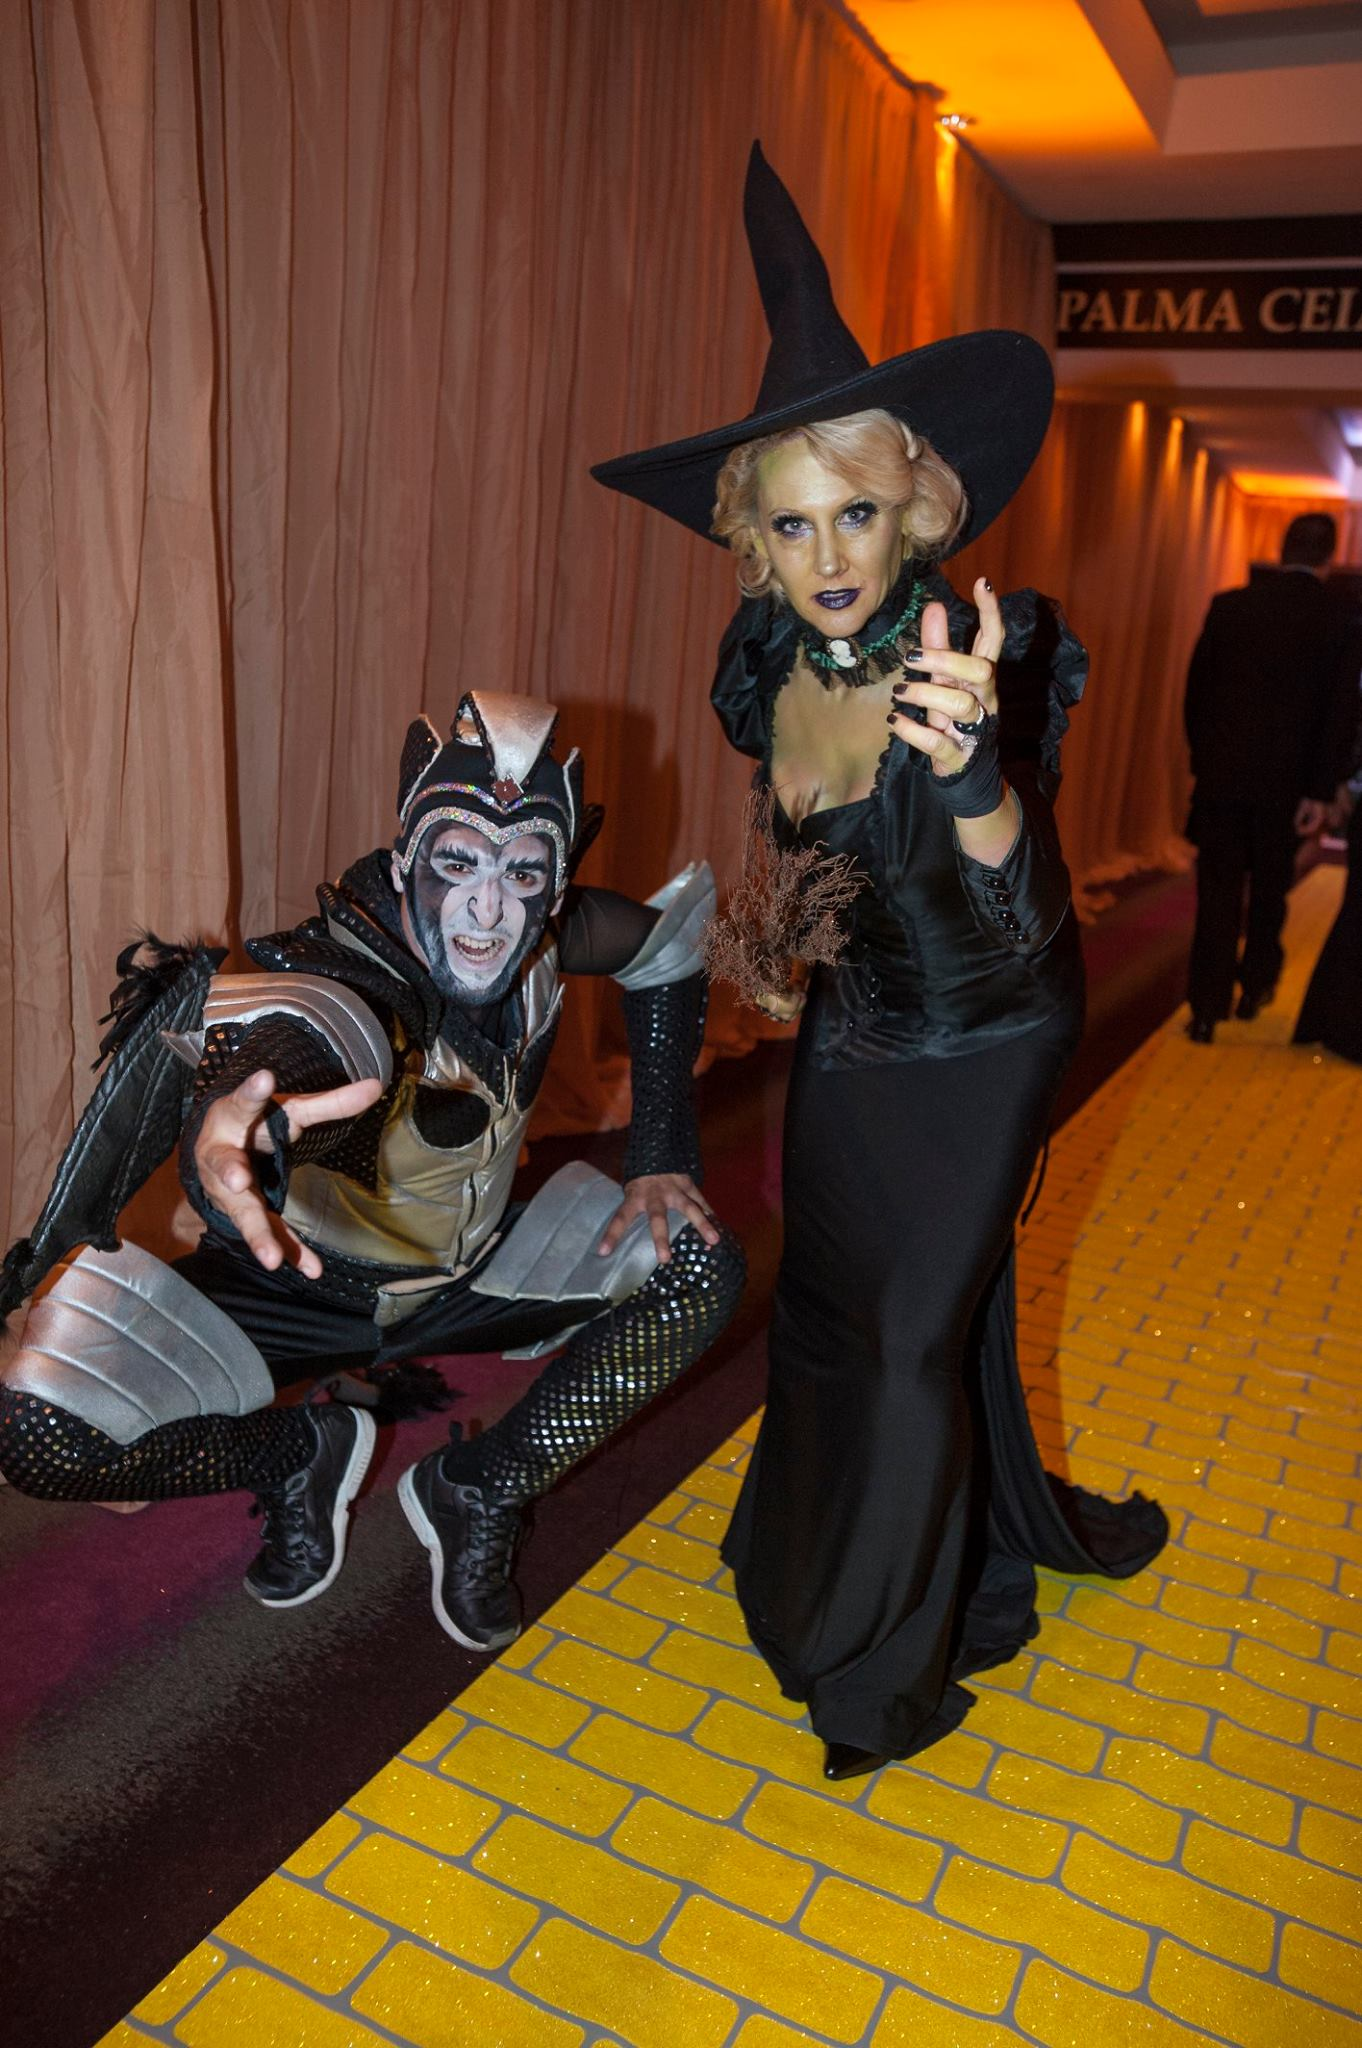 The Wicked Witch of the West and her monkey at the Wizard of Oz gala